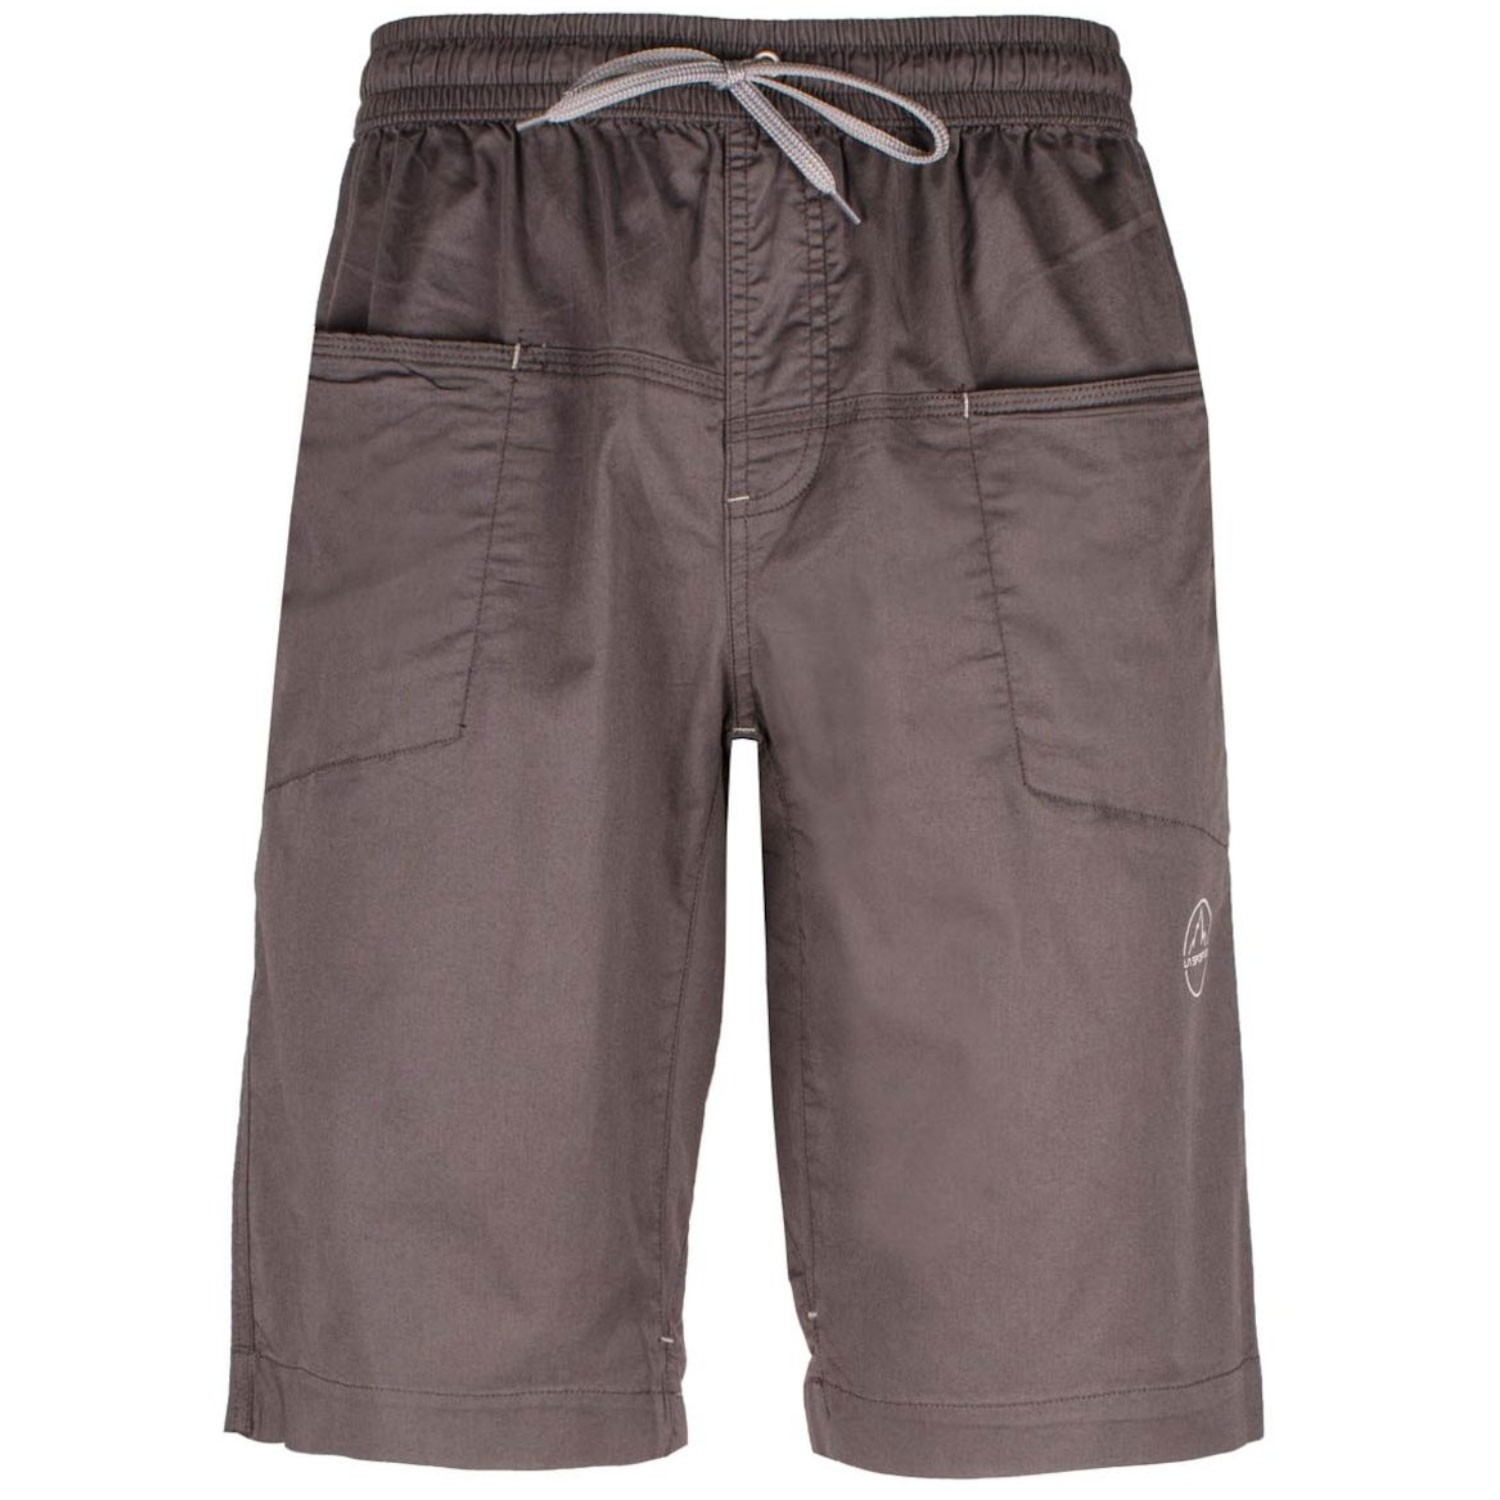 La Sportiva Levanto Men's Shorts - Carbon  - front